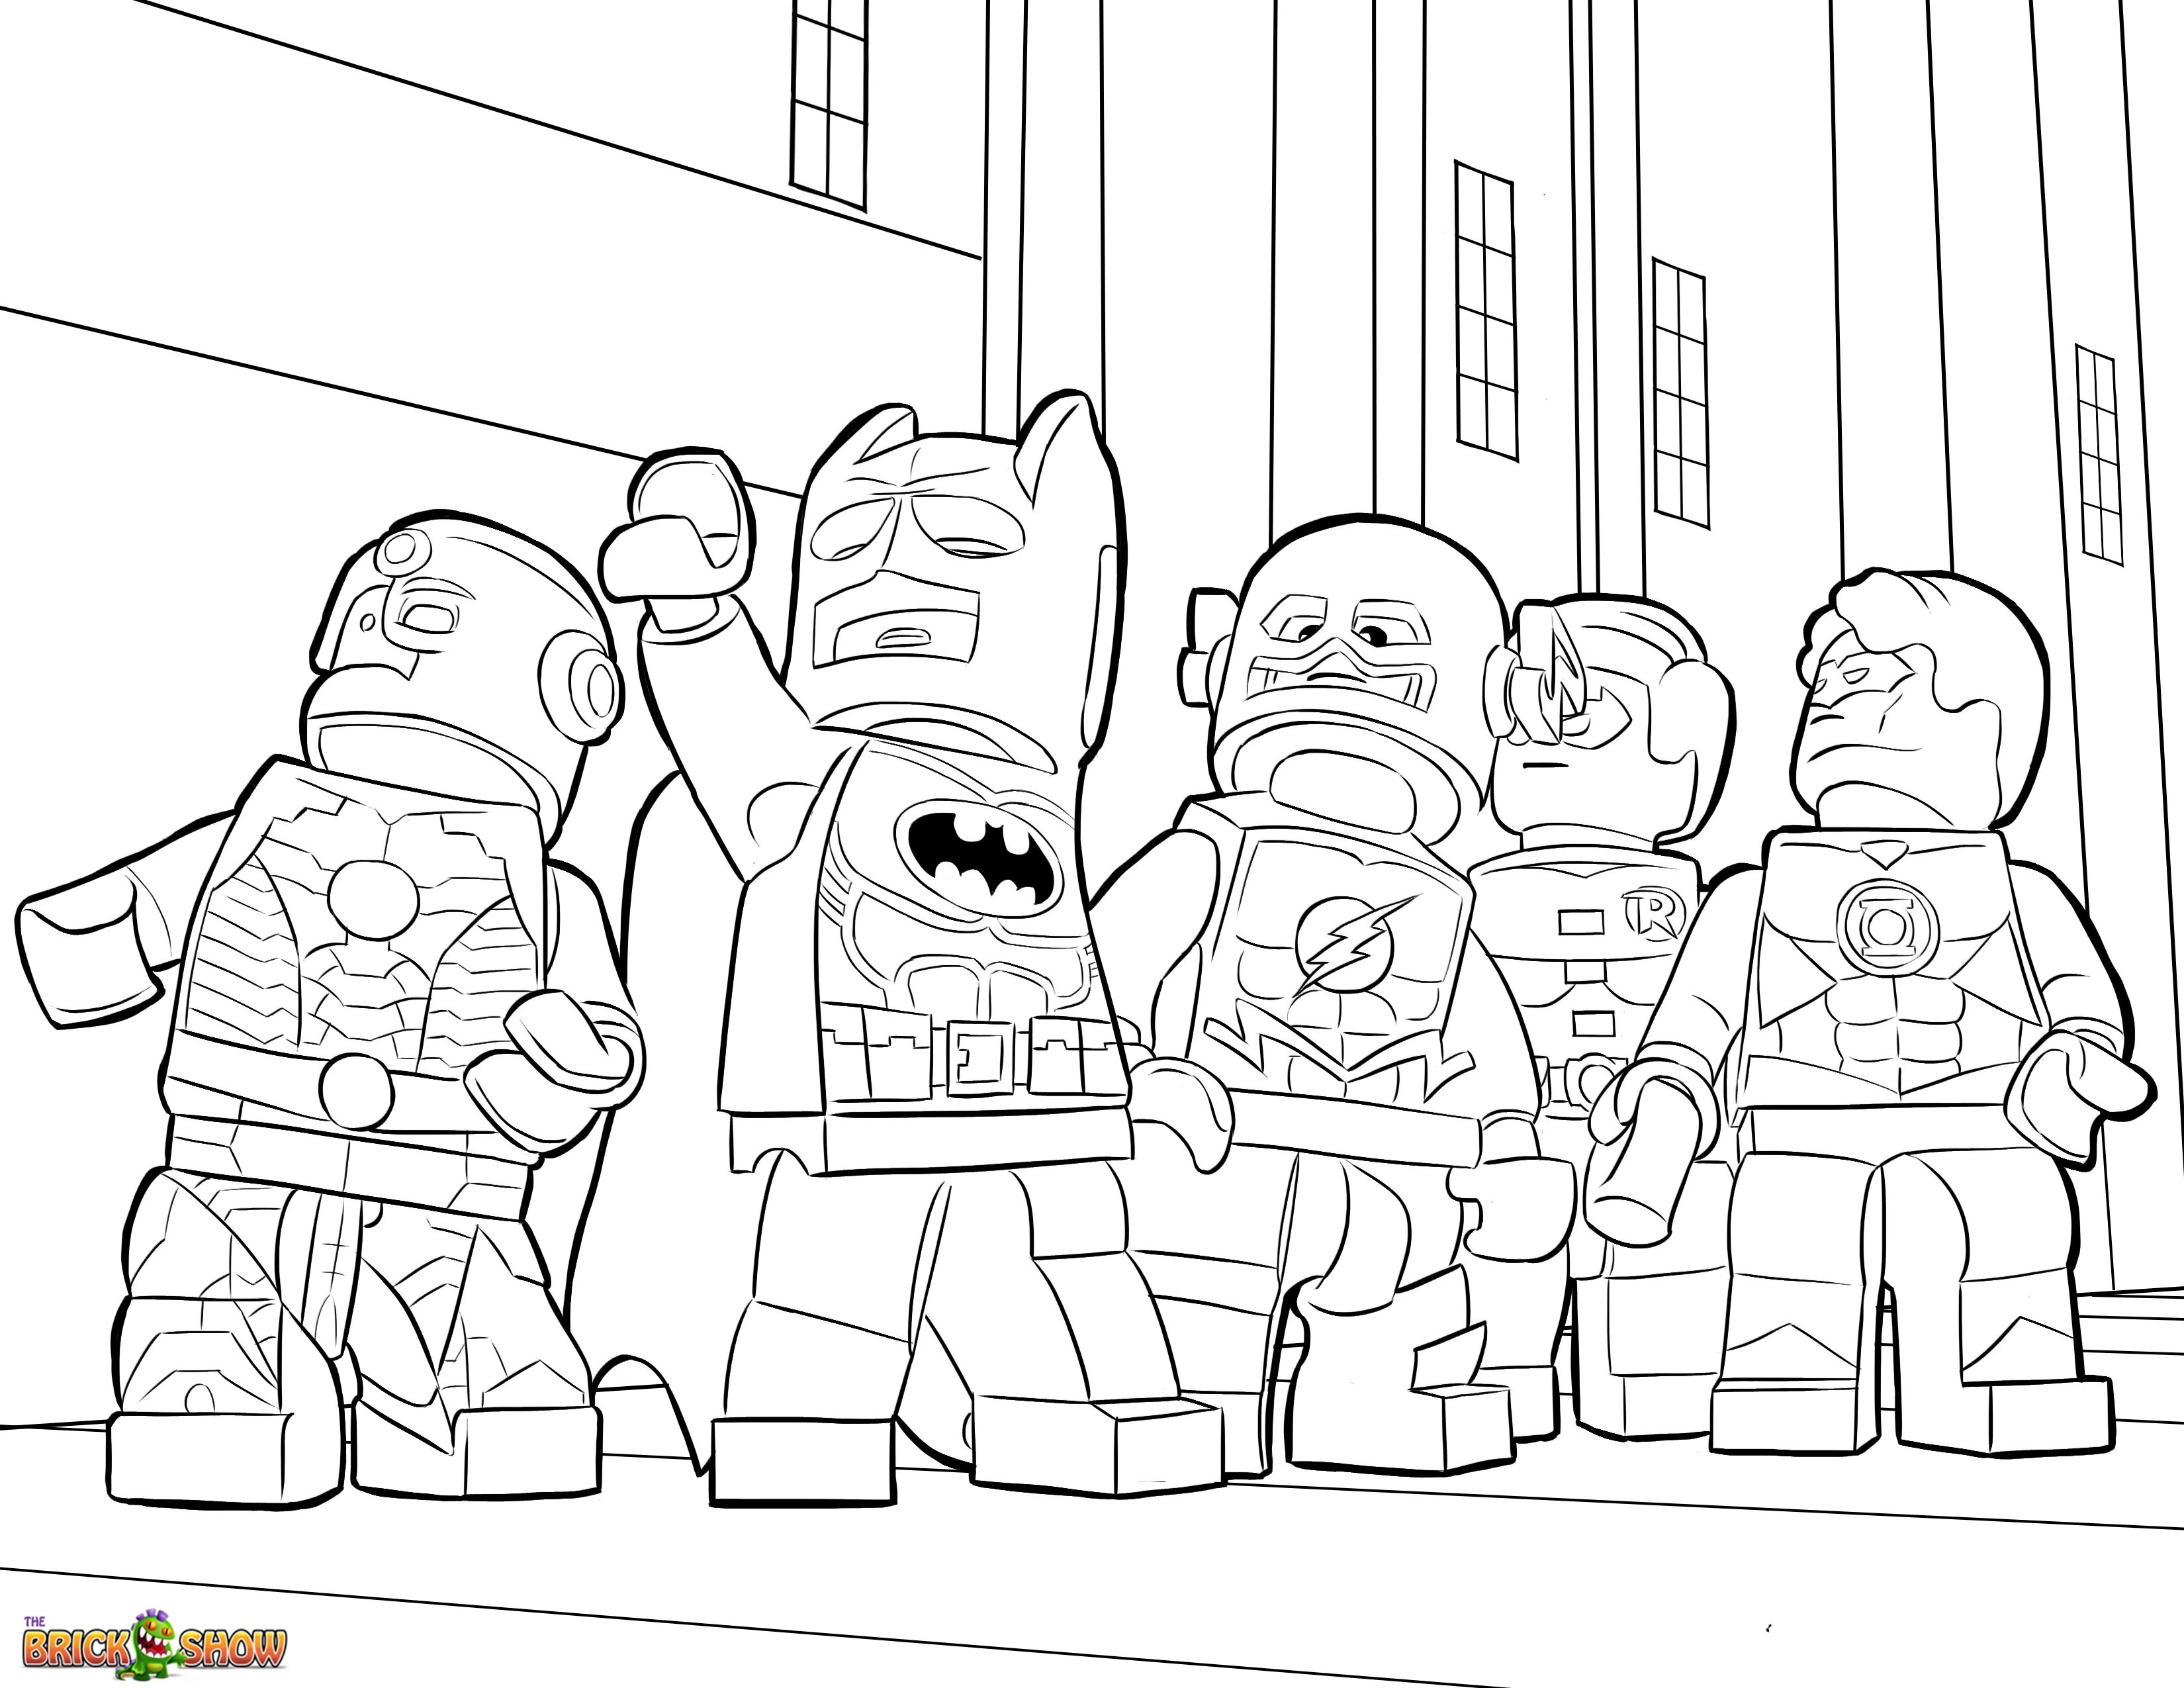 3300x2550 Lego Bridge Coloring Page For Kids Lovely Lego Marvel Superheroes